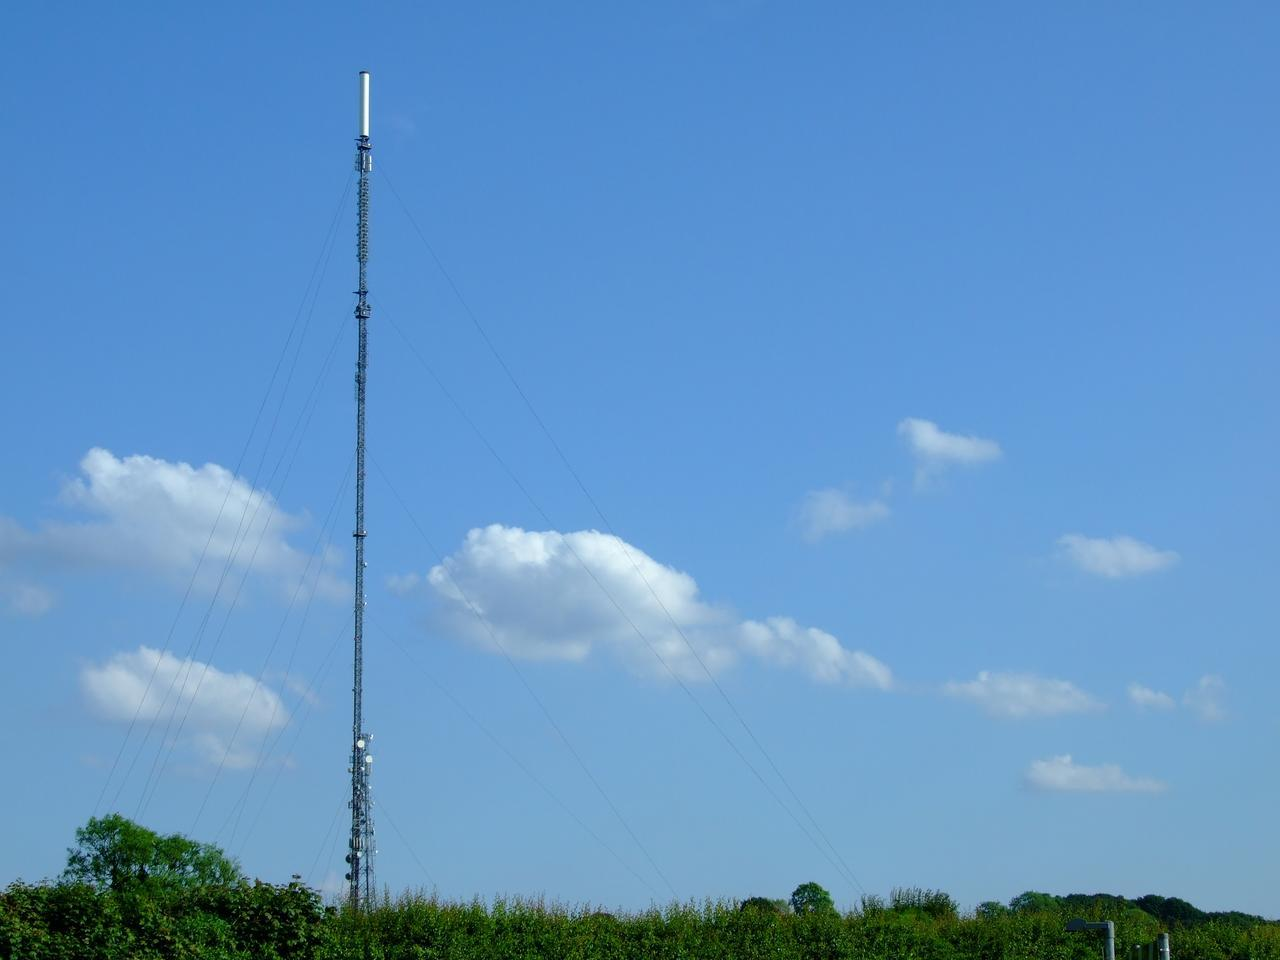 Can Arqiva provide the Smart Grid communications infrastructure for Britain?